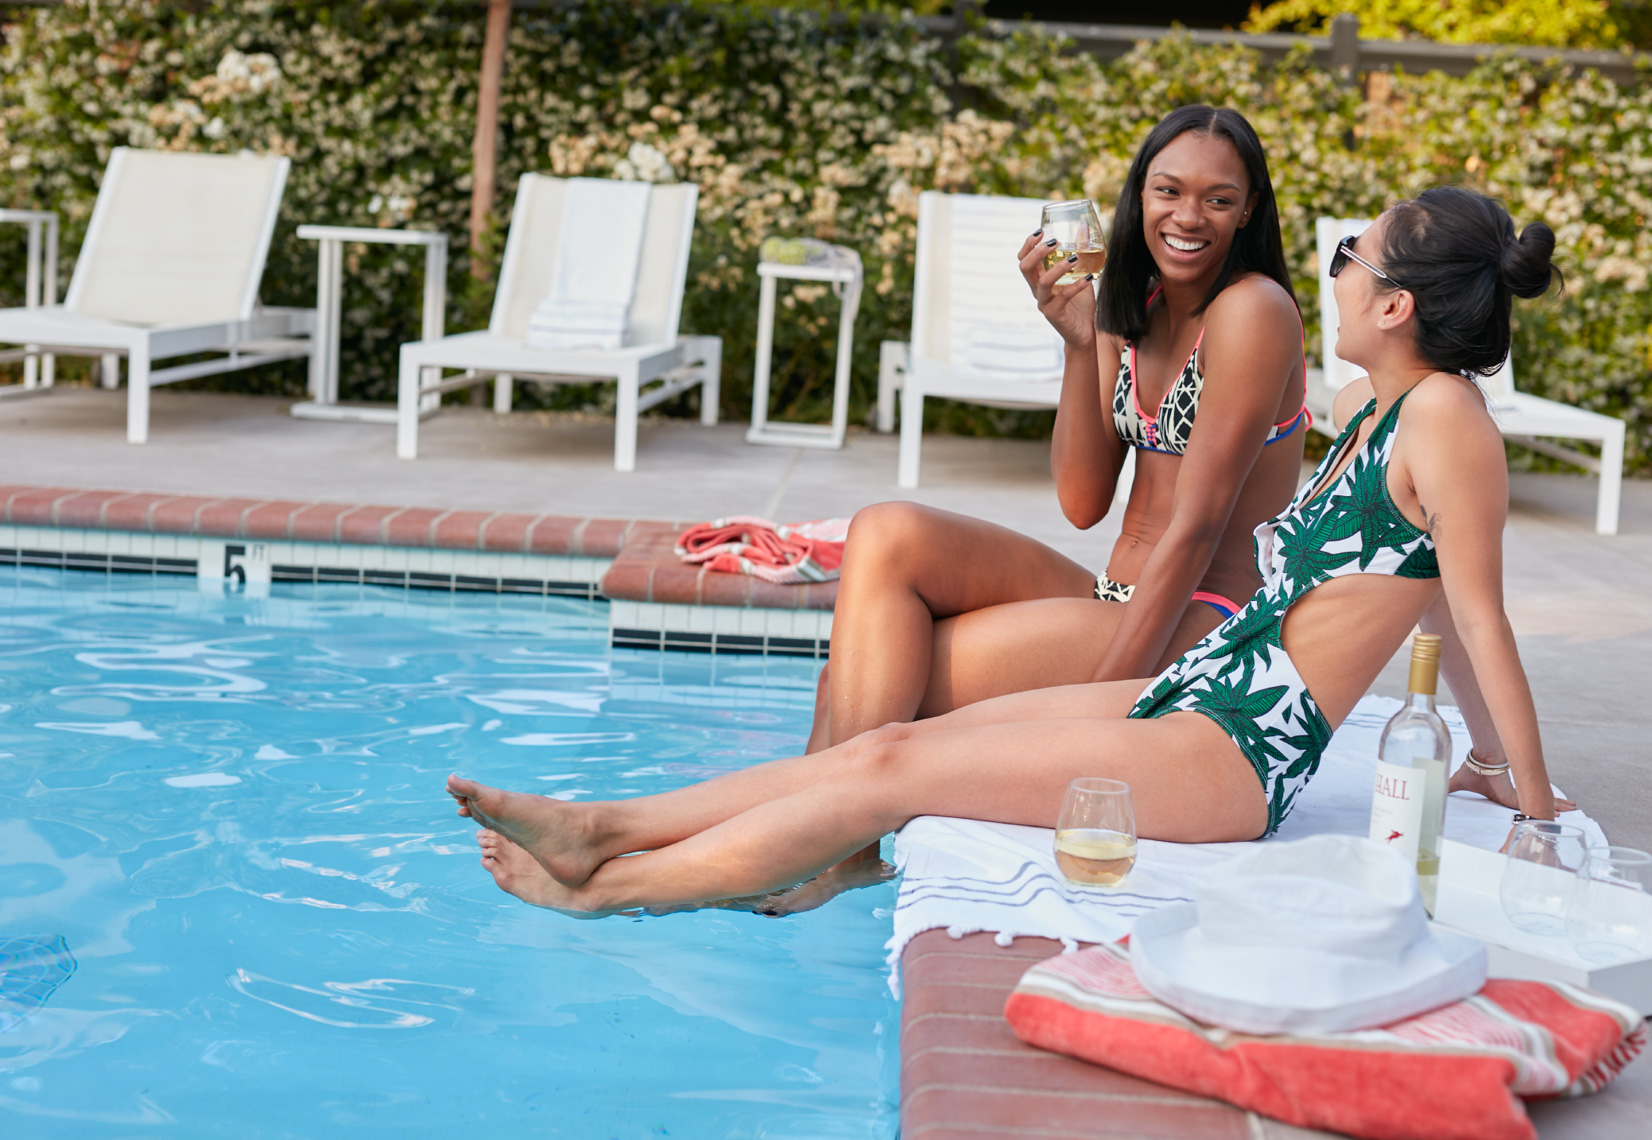 Two women laughing with their feet in a blue pool  shot for Senza Hotel and Spa in Napa California